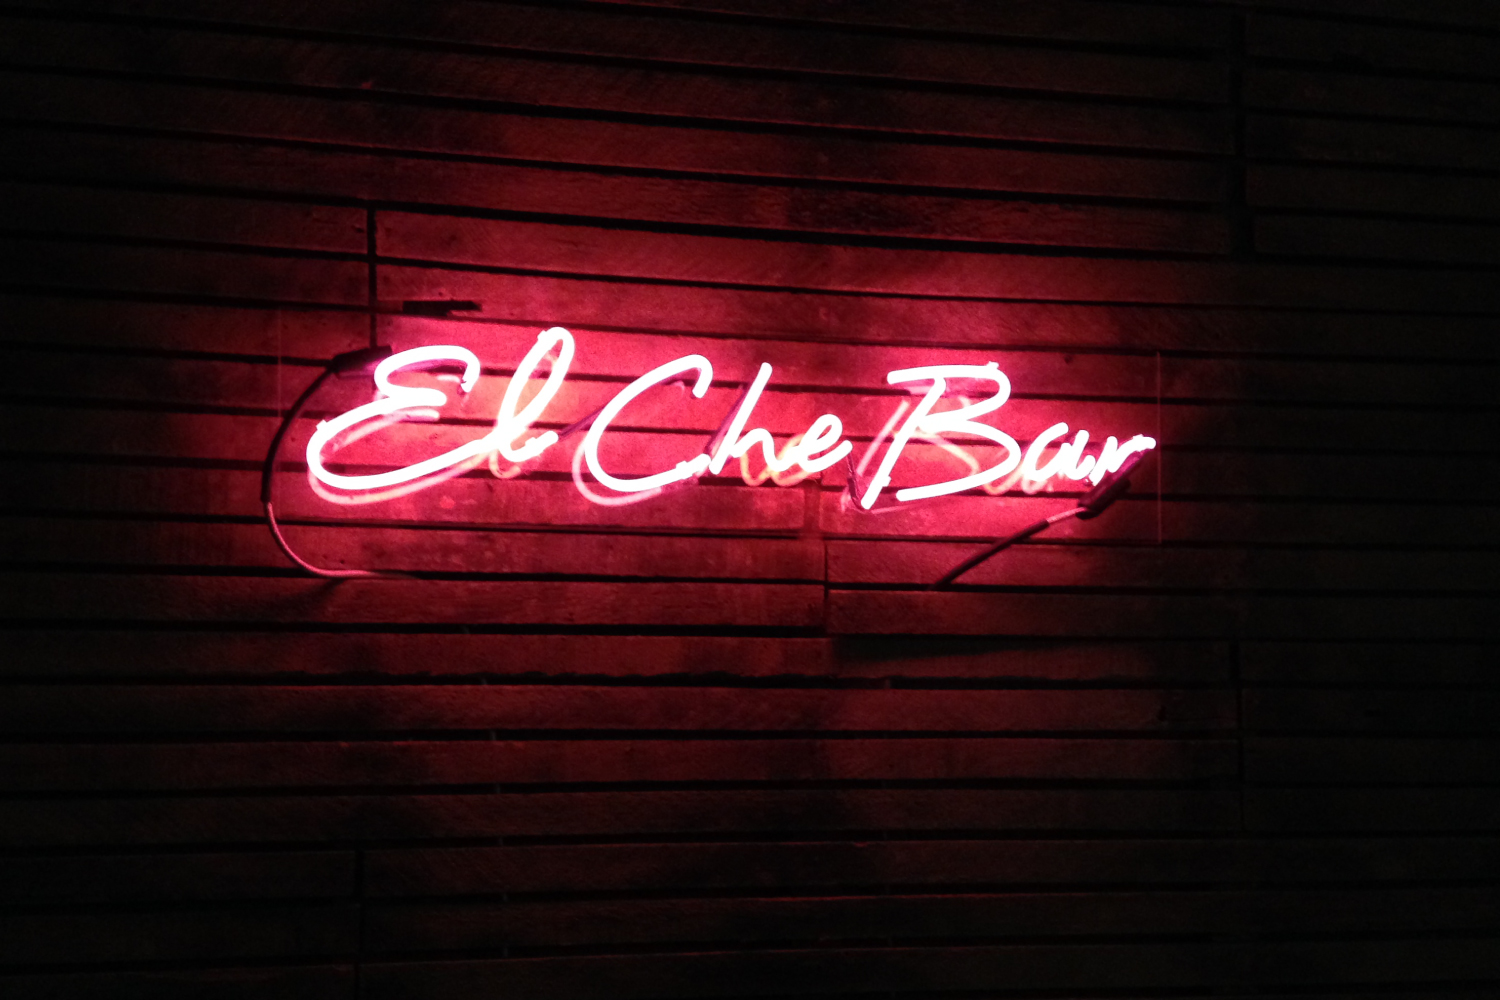 El Che Bar Chicago promotion neon sign design.